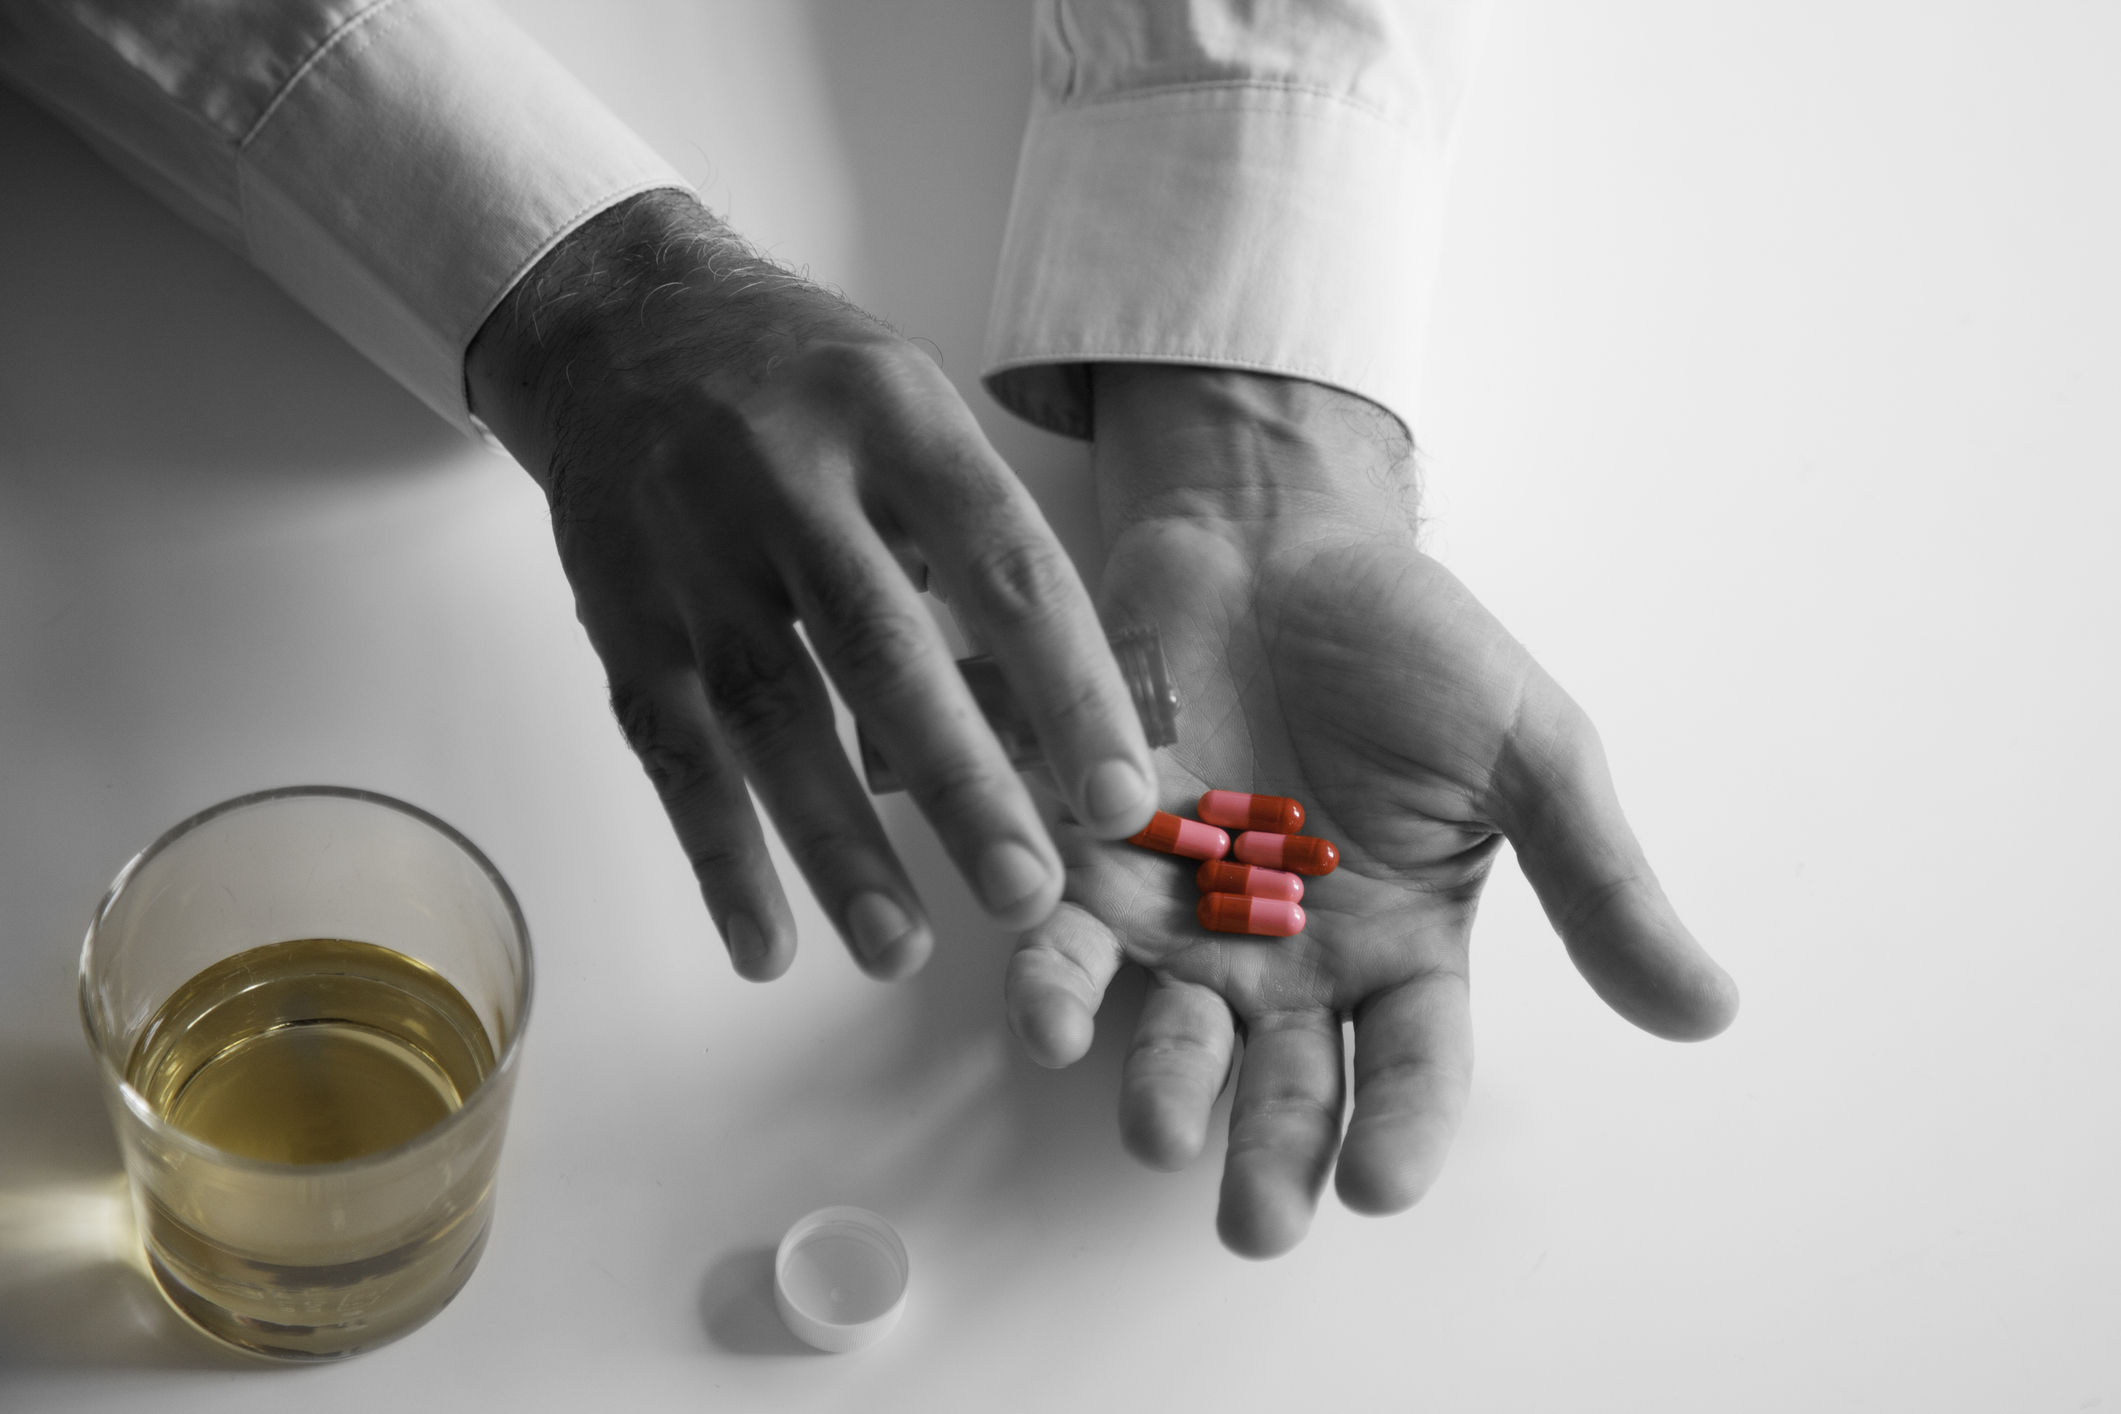 Dominion Outpatient is Now Offering Substance Abuse Services